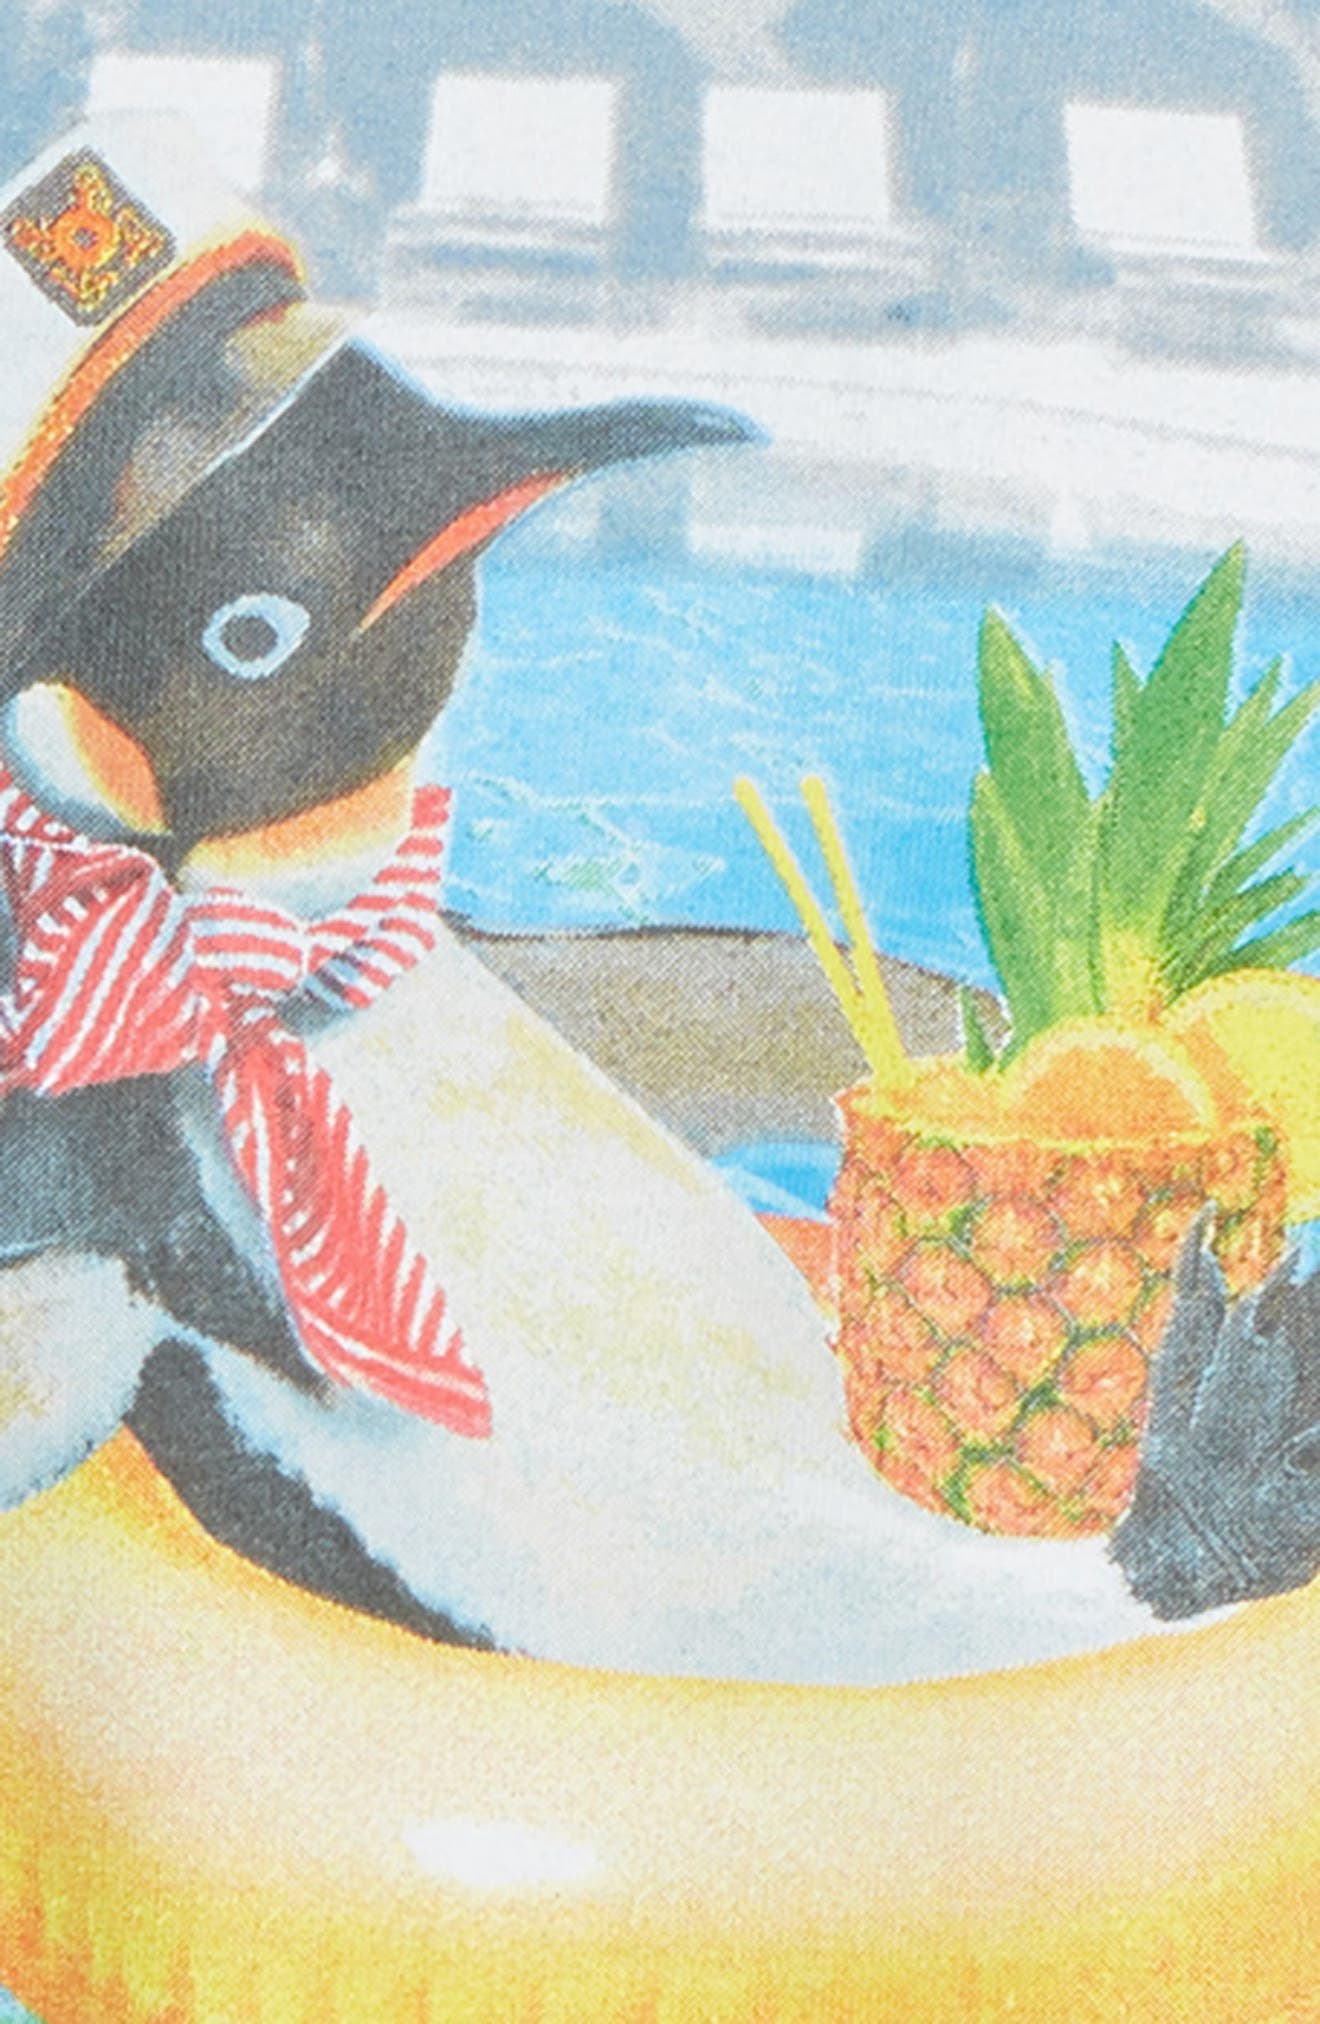 Penguin Vacation Graphic T-Shirt,                             Alternate thumbnail 2, color,                             410